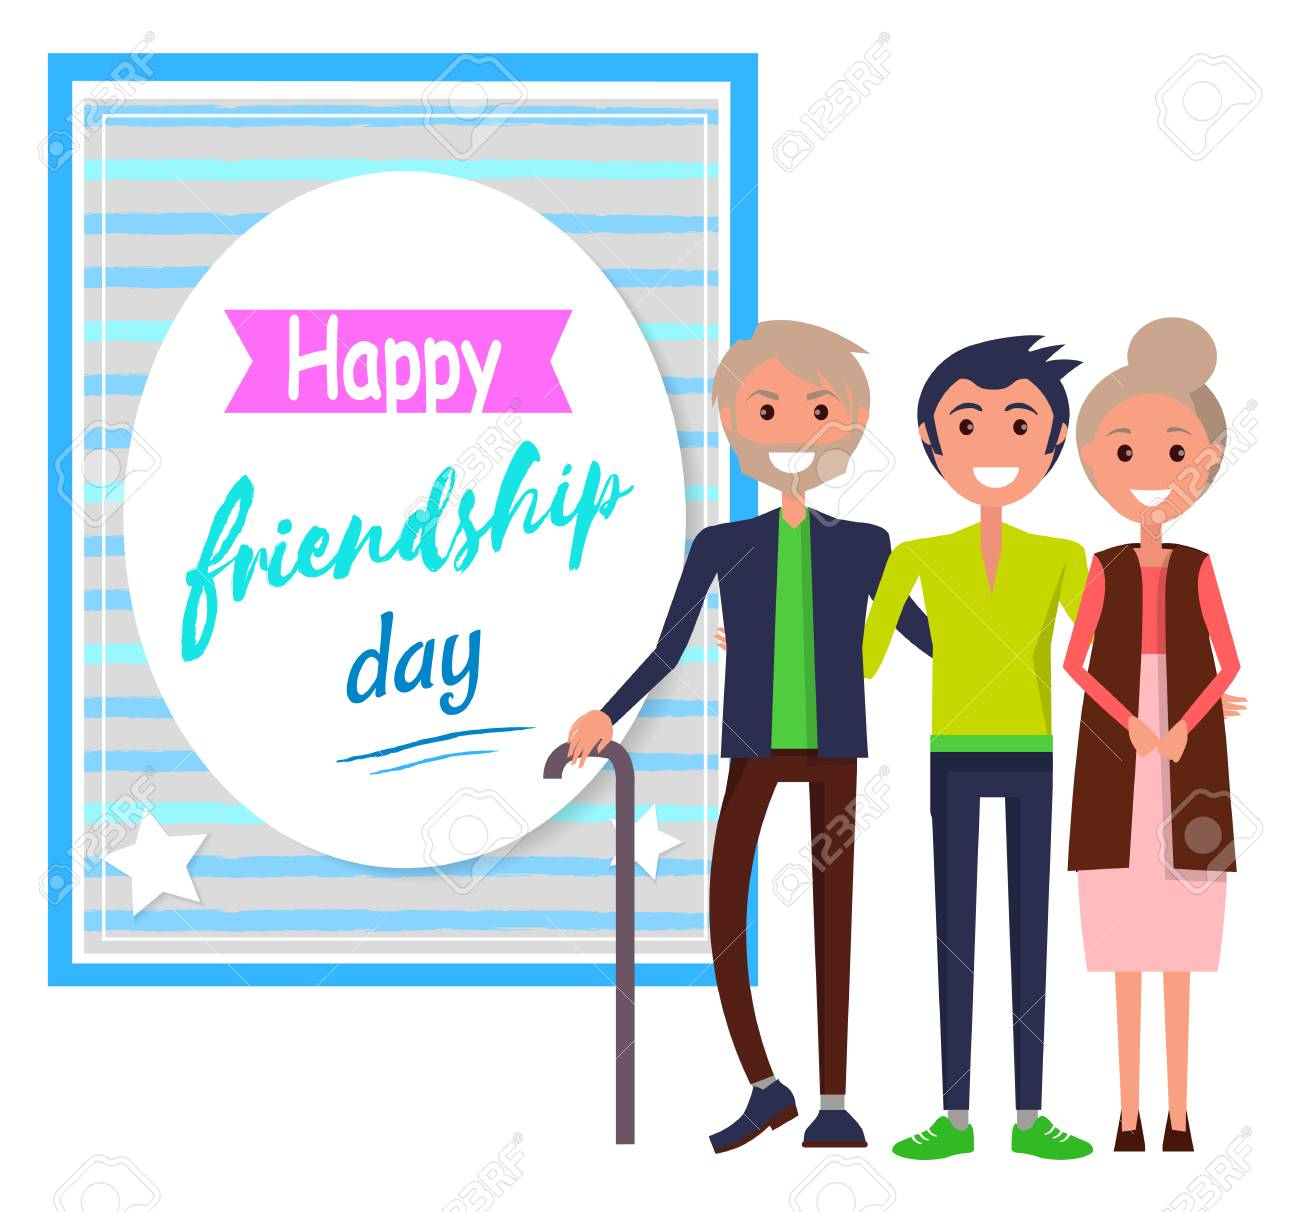 Happy Friendship Day Greeting Card With Friends Royalty Free